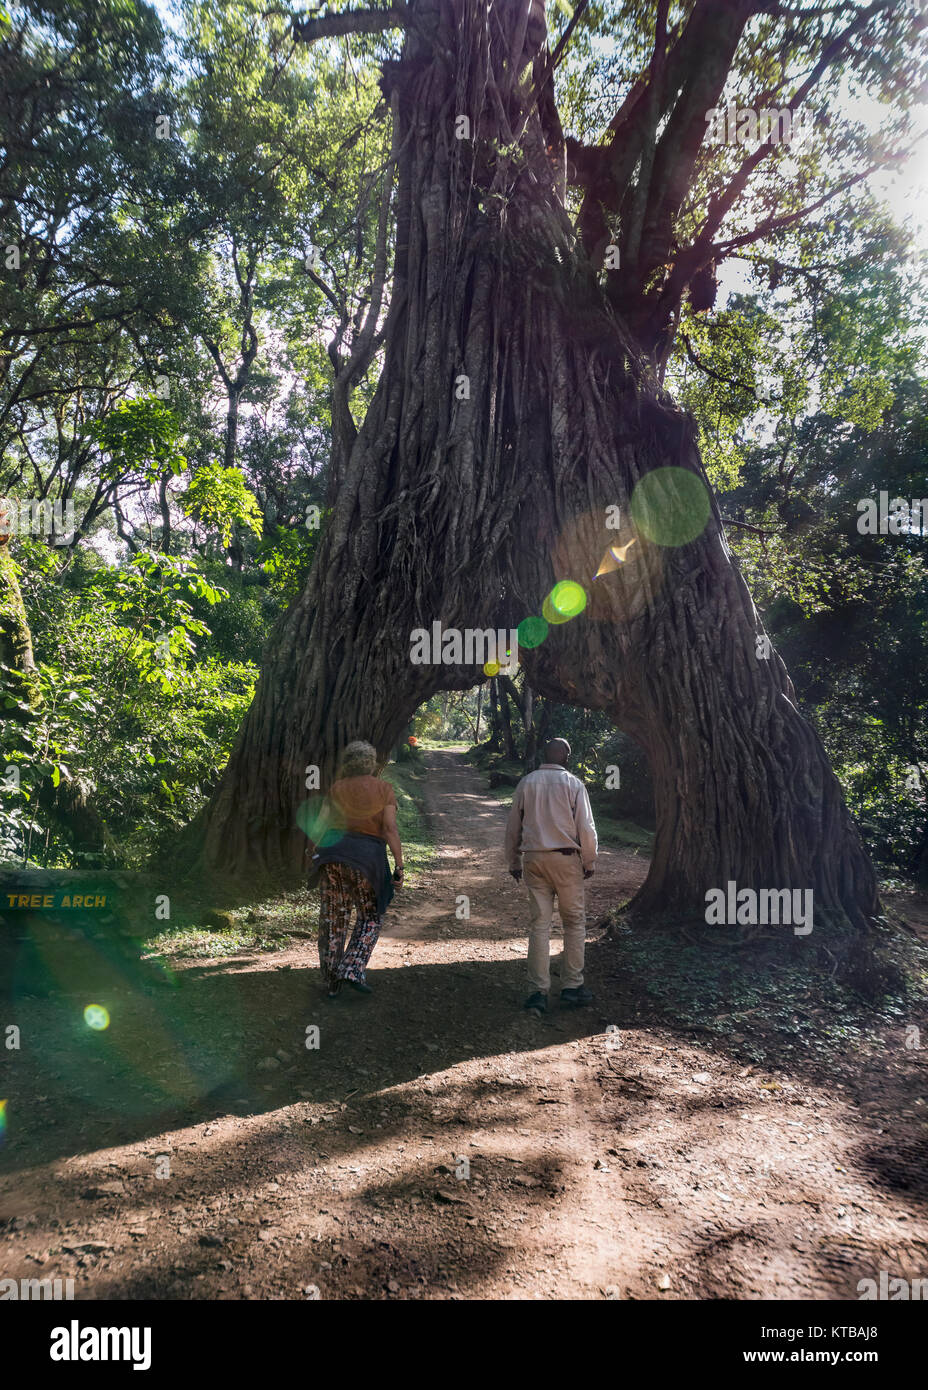 Walking under the Fig Tree Arch, with lens flare, Ausha NP, Tanzania - Stock Image